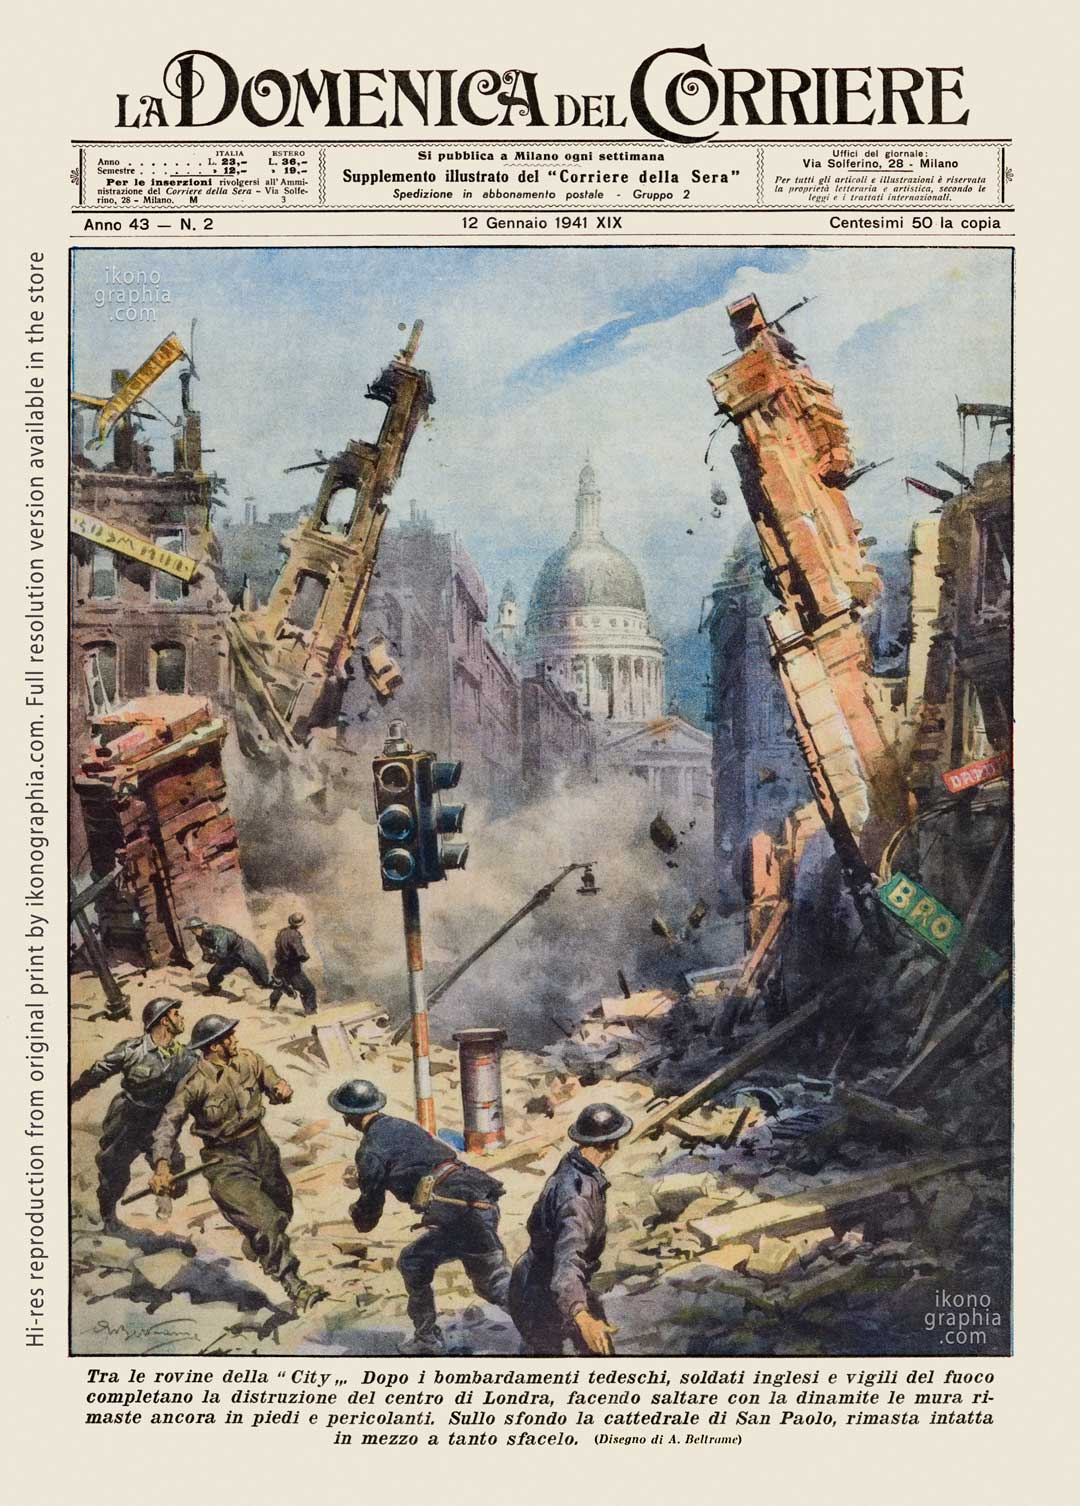 """A plate by Achille Beltrame for """"La Domenica del Corriere"""". The devastated central London with the surviving St Paul's Cathedral"""